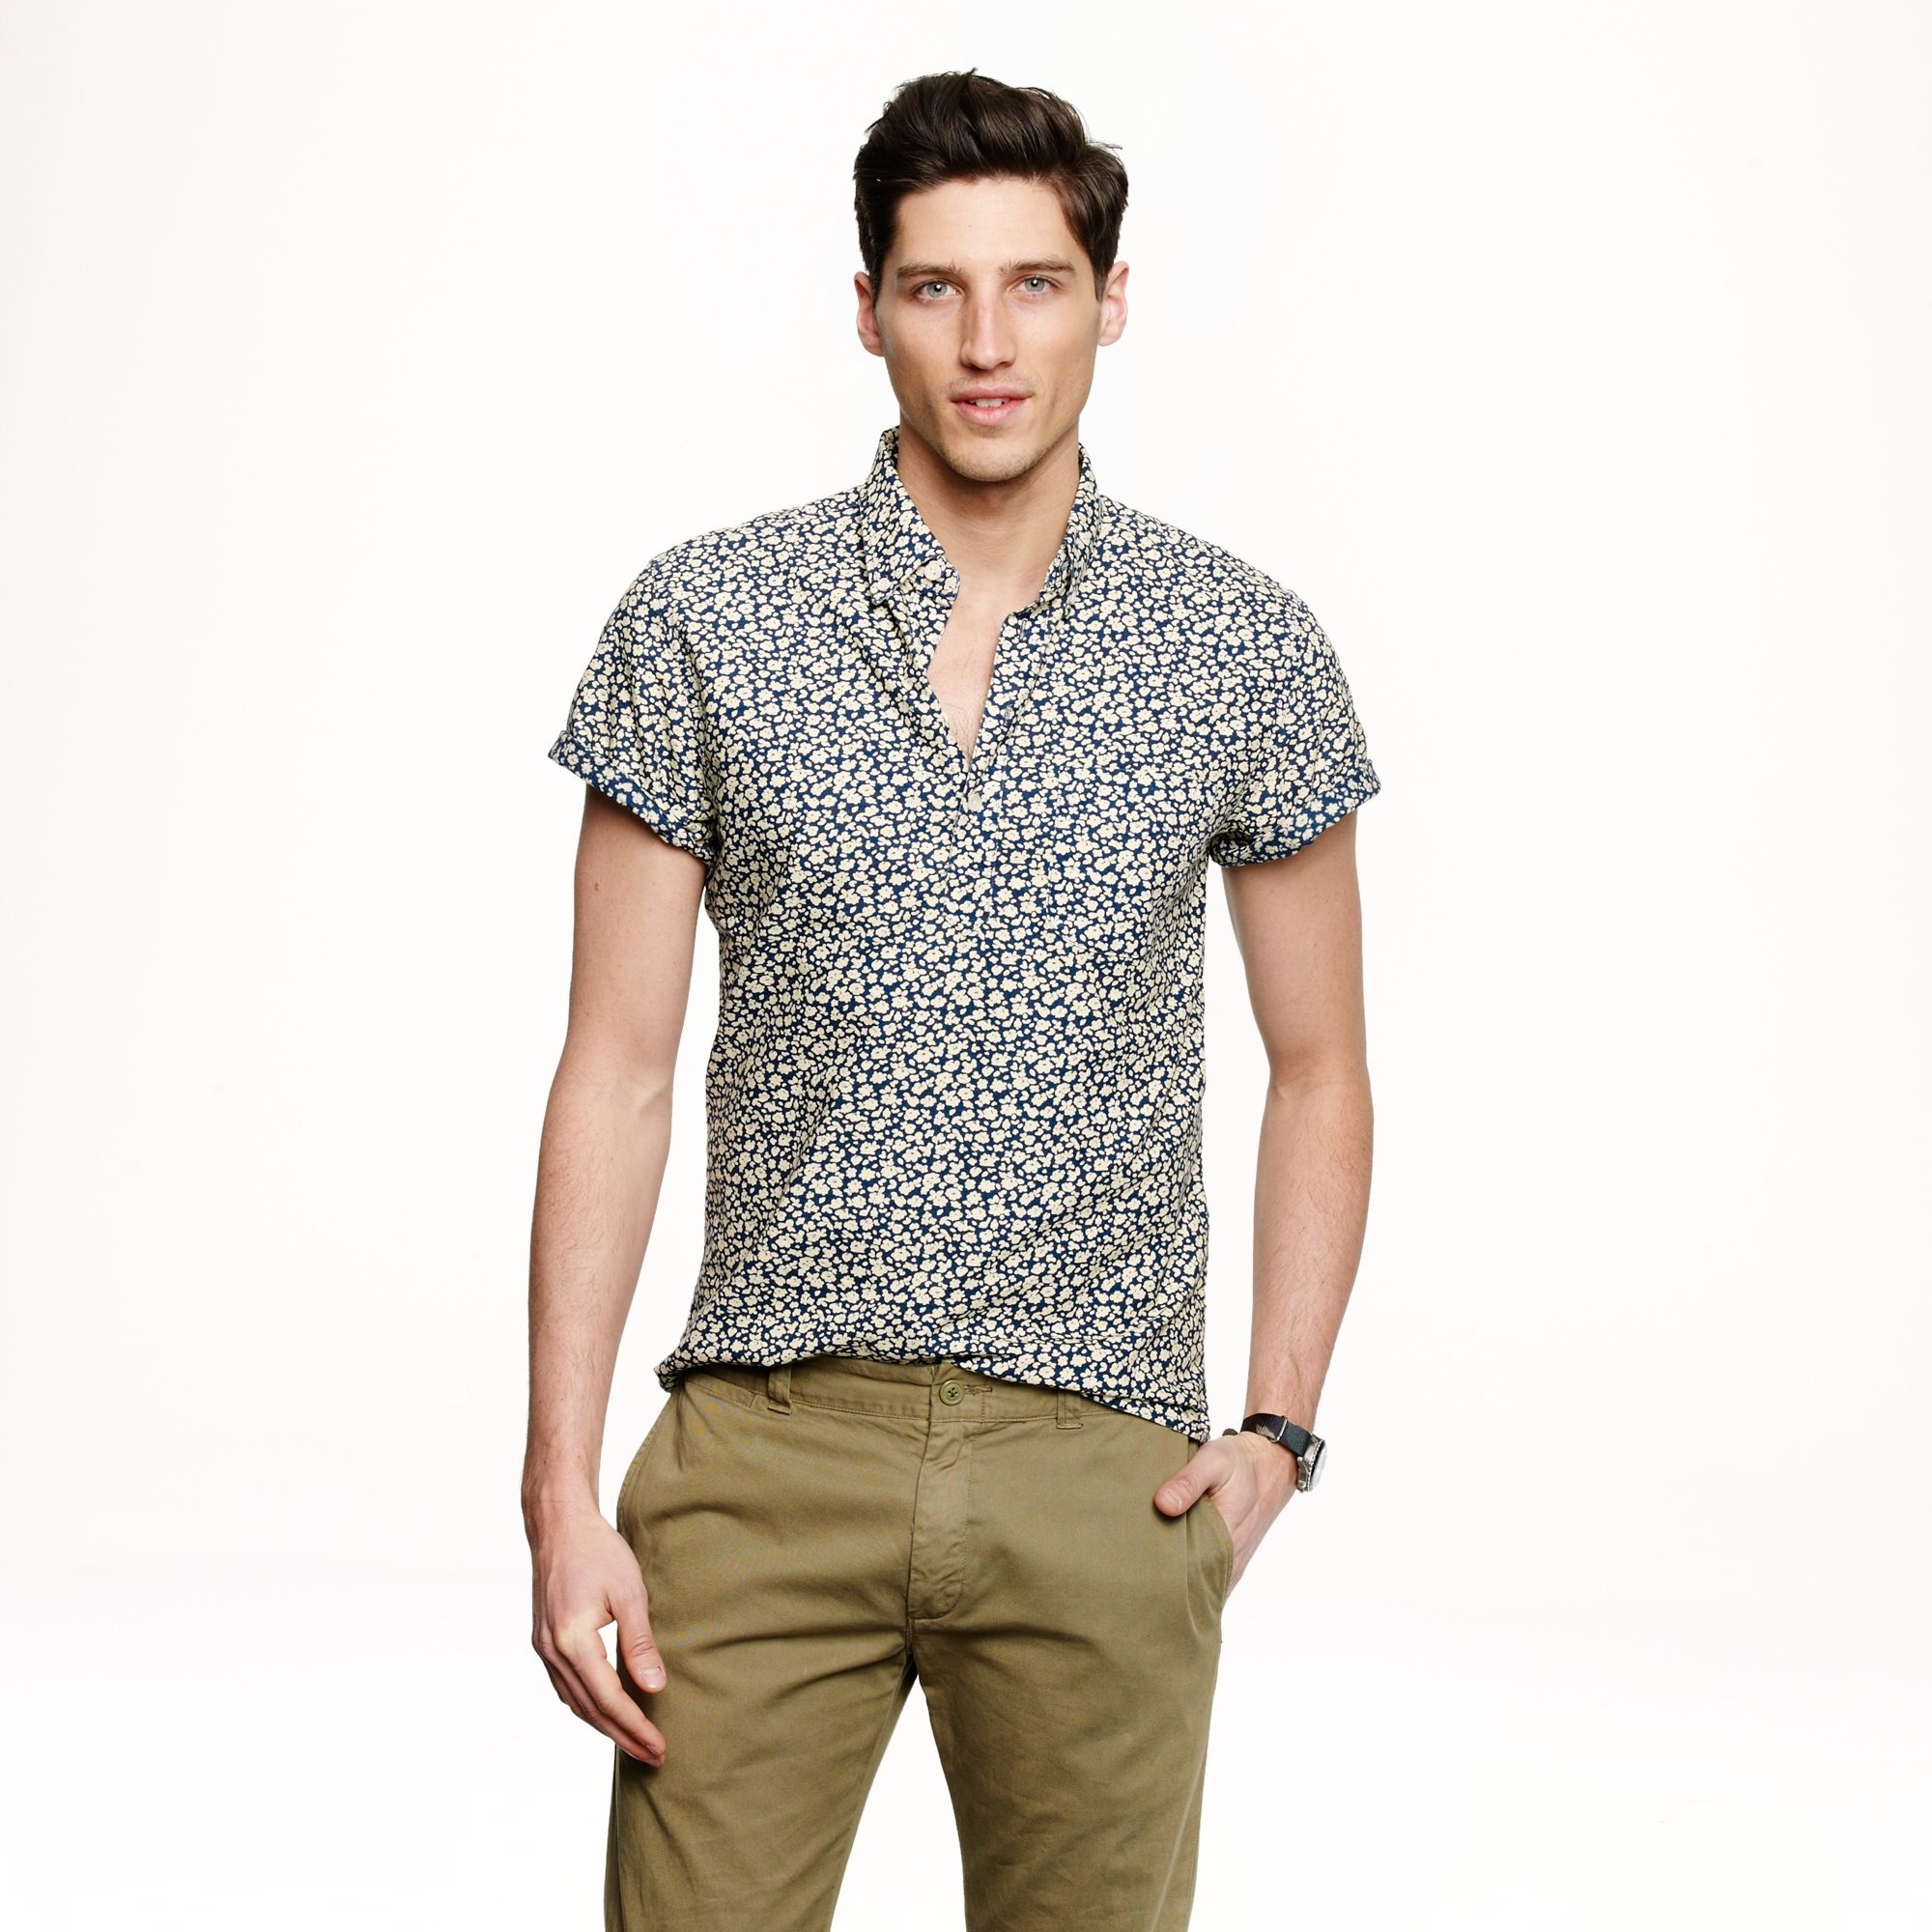 63a0cc20f4e Lyst - J.Crew Short Sleeve Popover in Reverse Printed Floral for Men